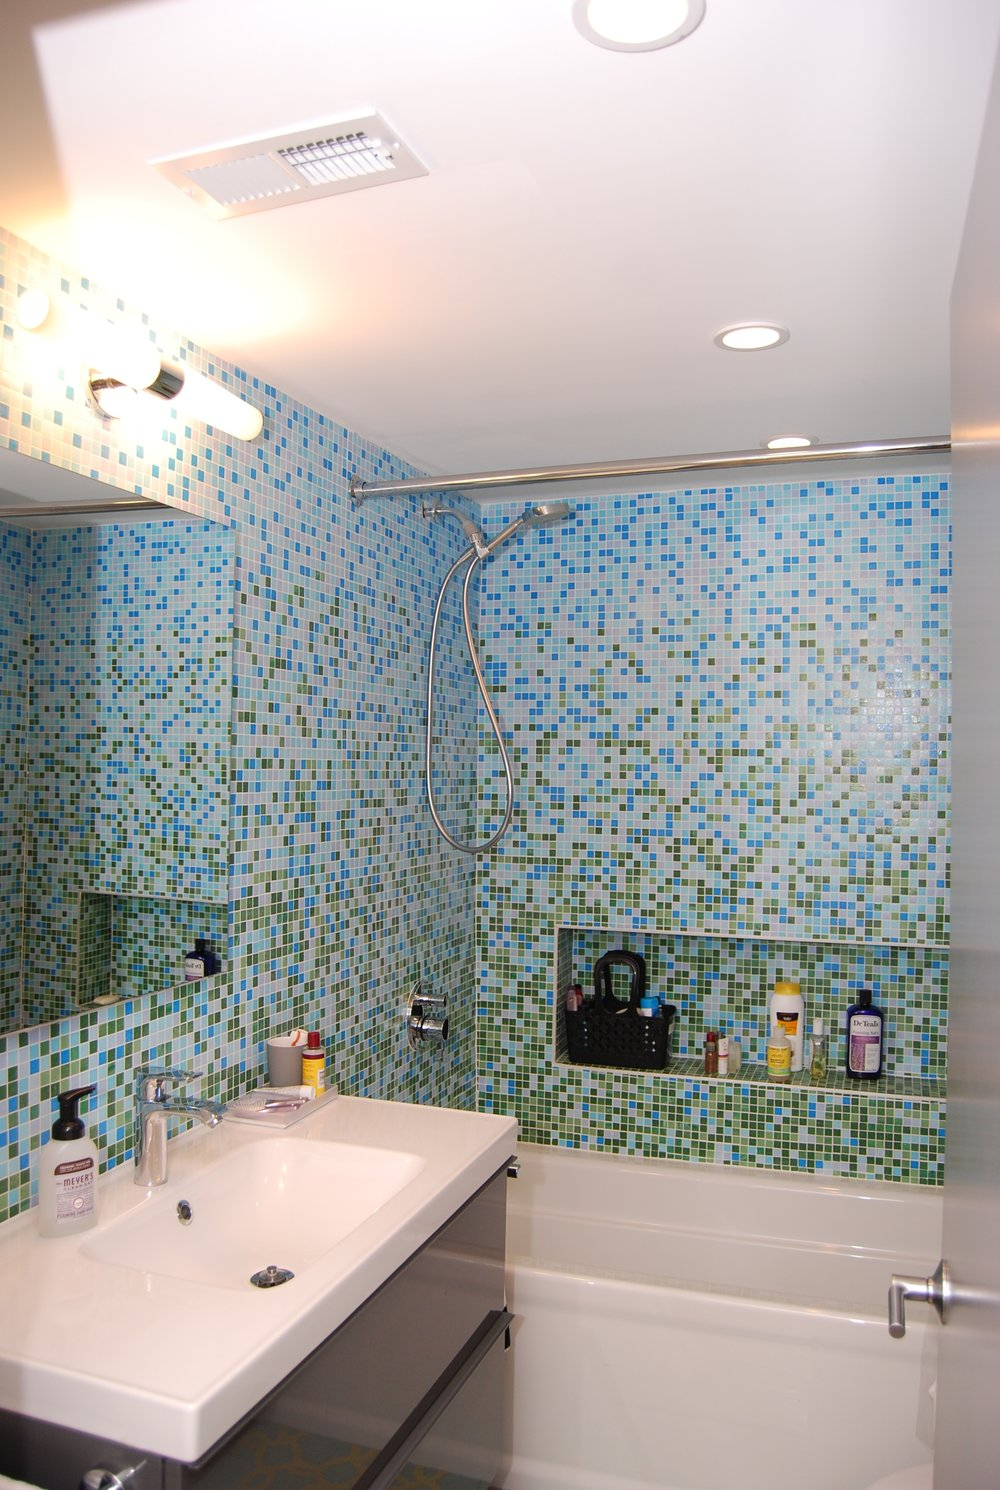 The finished hall bathroom. Some additional wall space was found during demo and we inserted a long soap/shampoo niche.